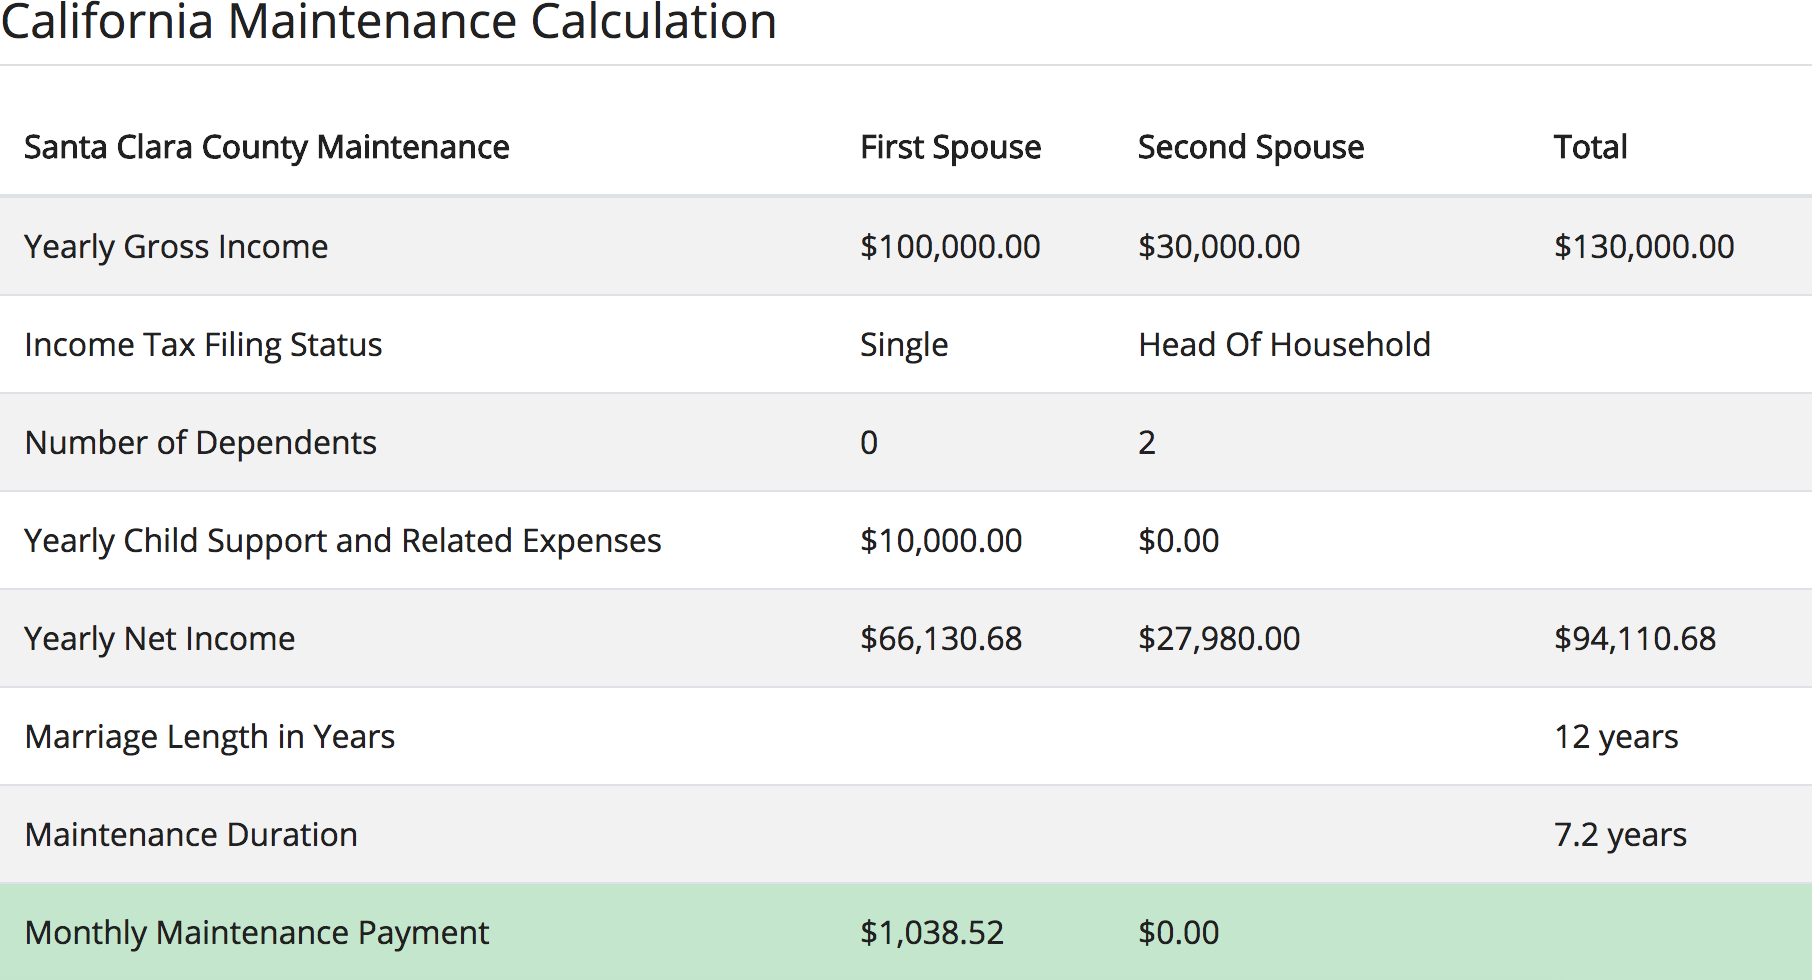 California Maintenance Calculator calculation